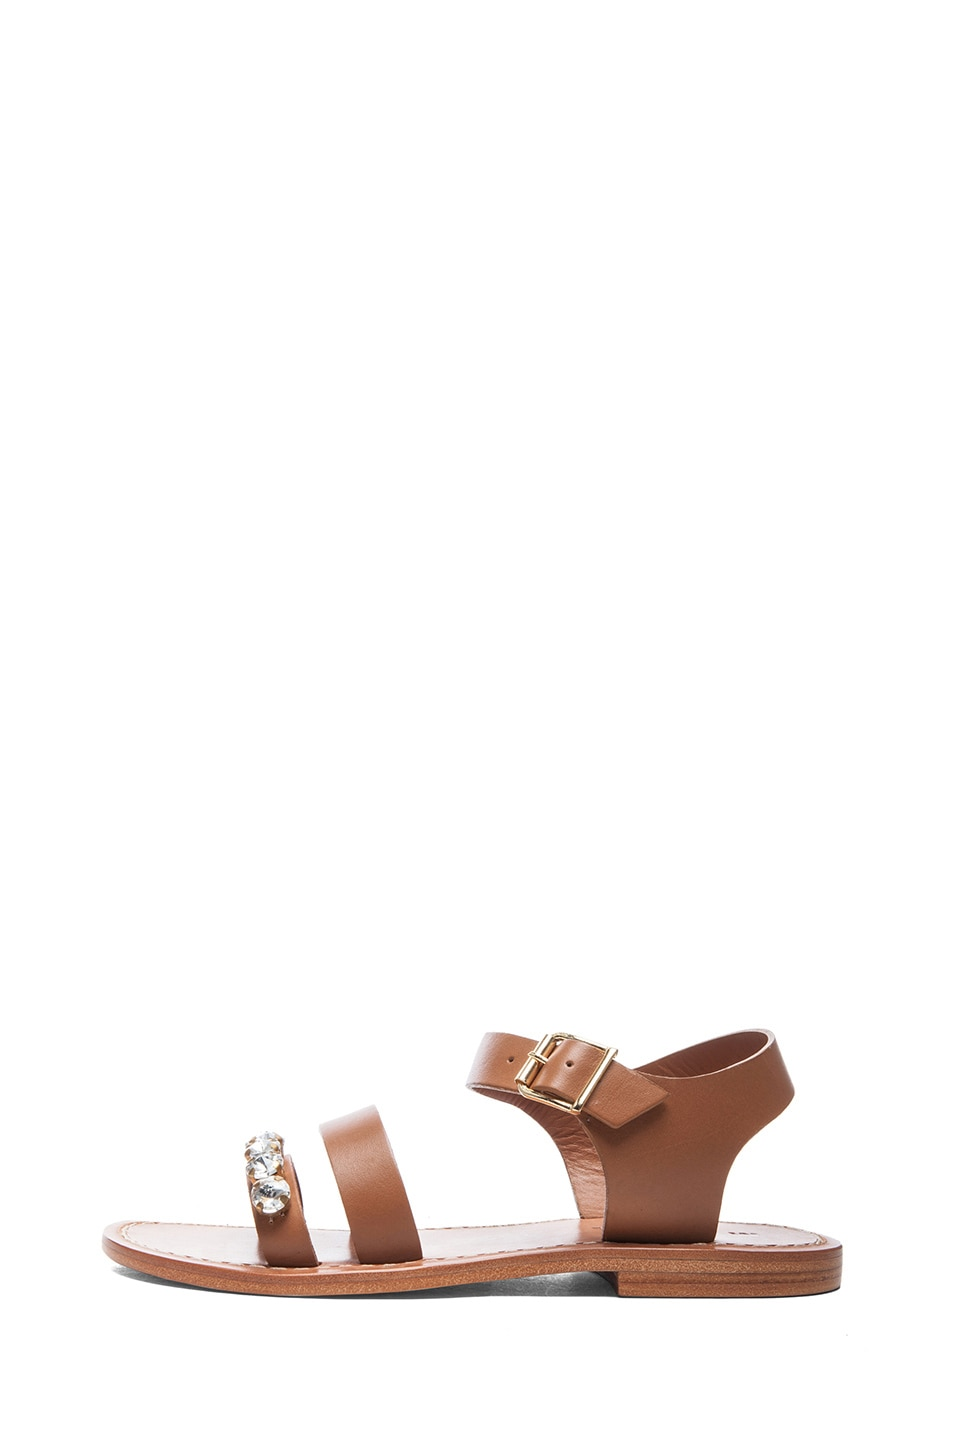 Image 1 of Marni Embellished Leather Sandals with Small Stones in Caramel